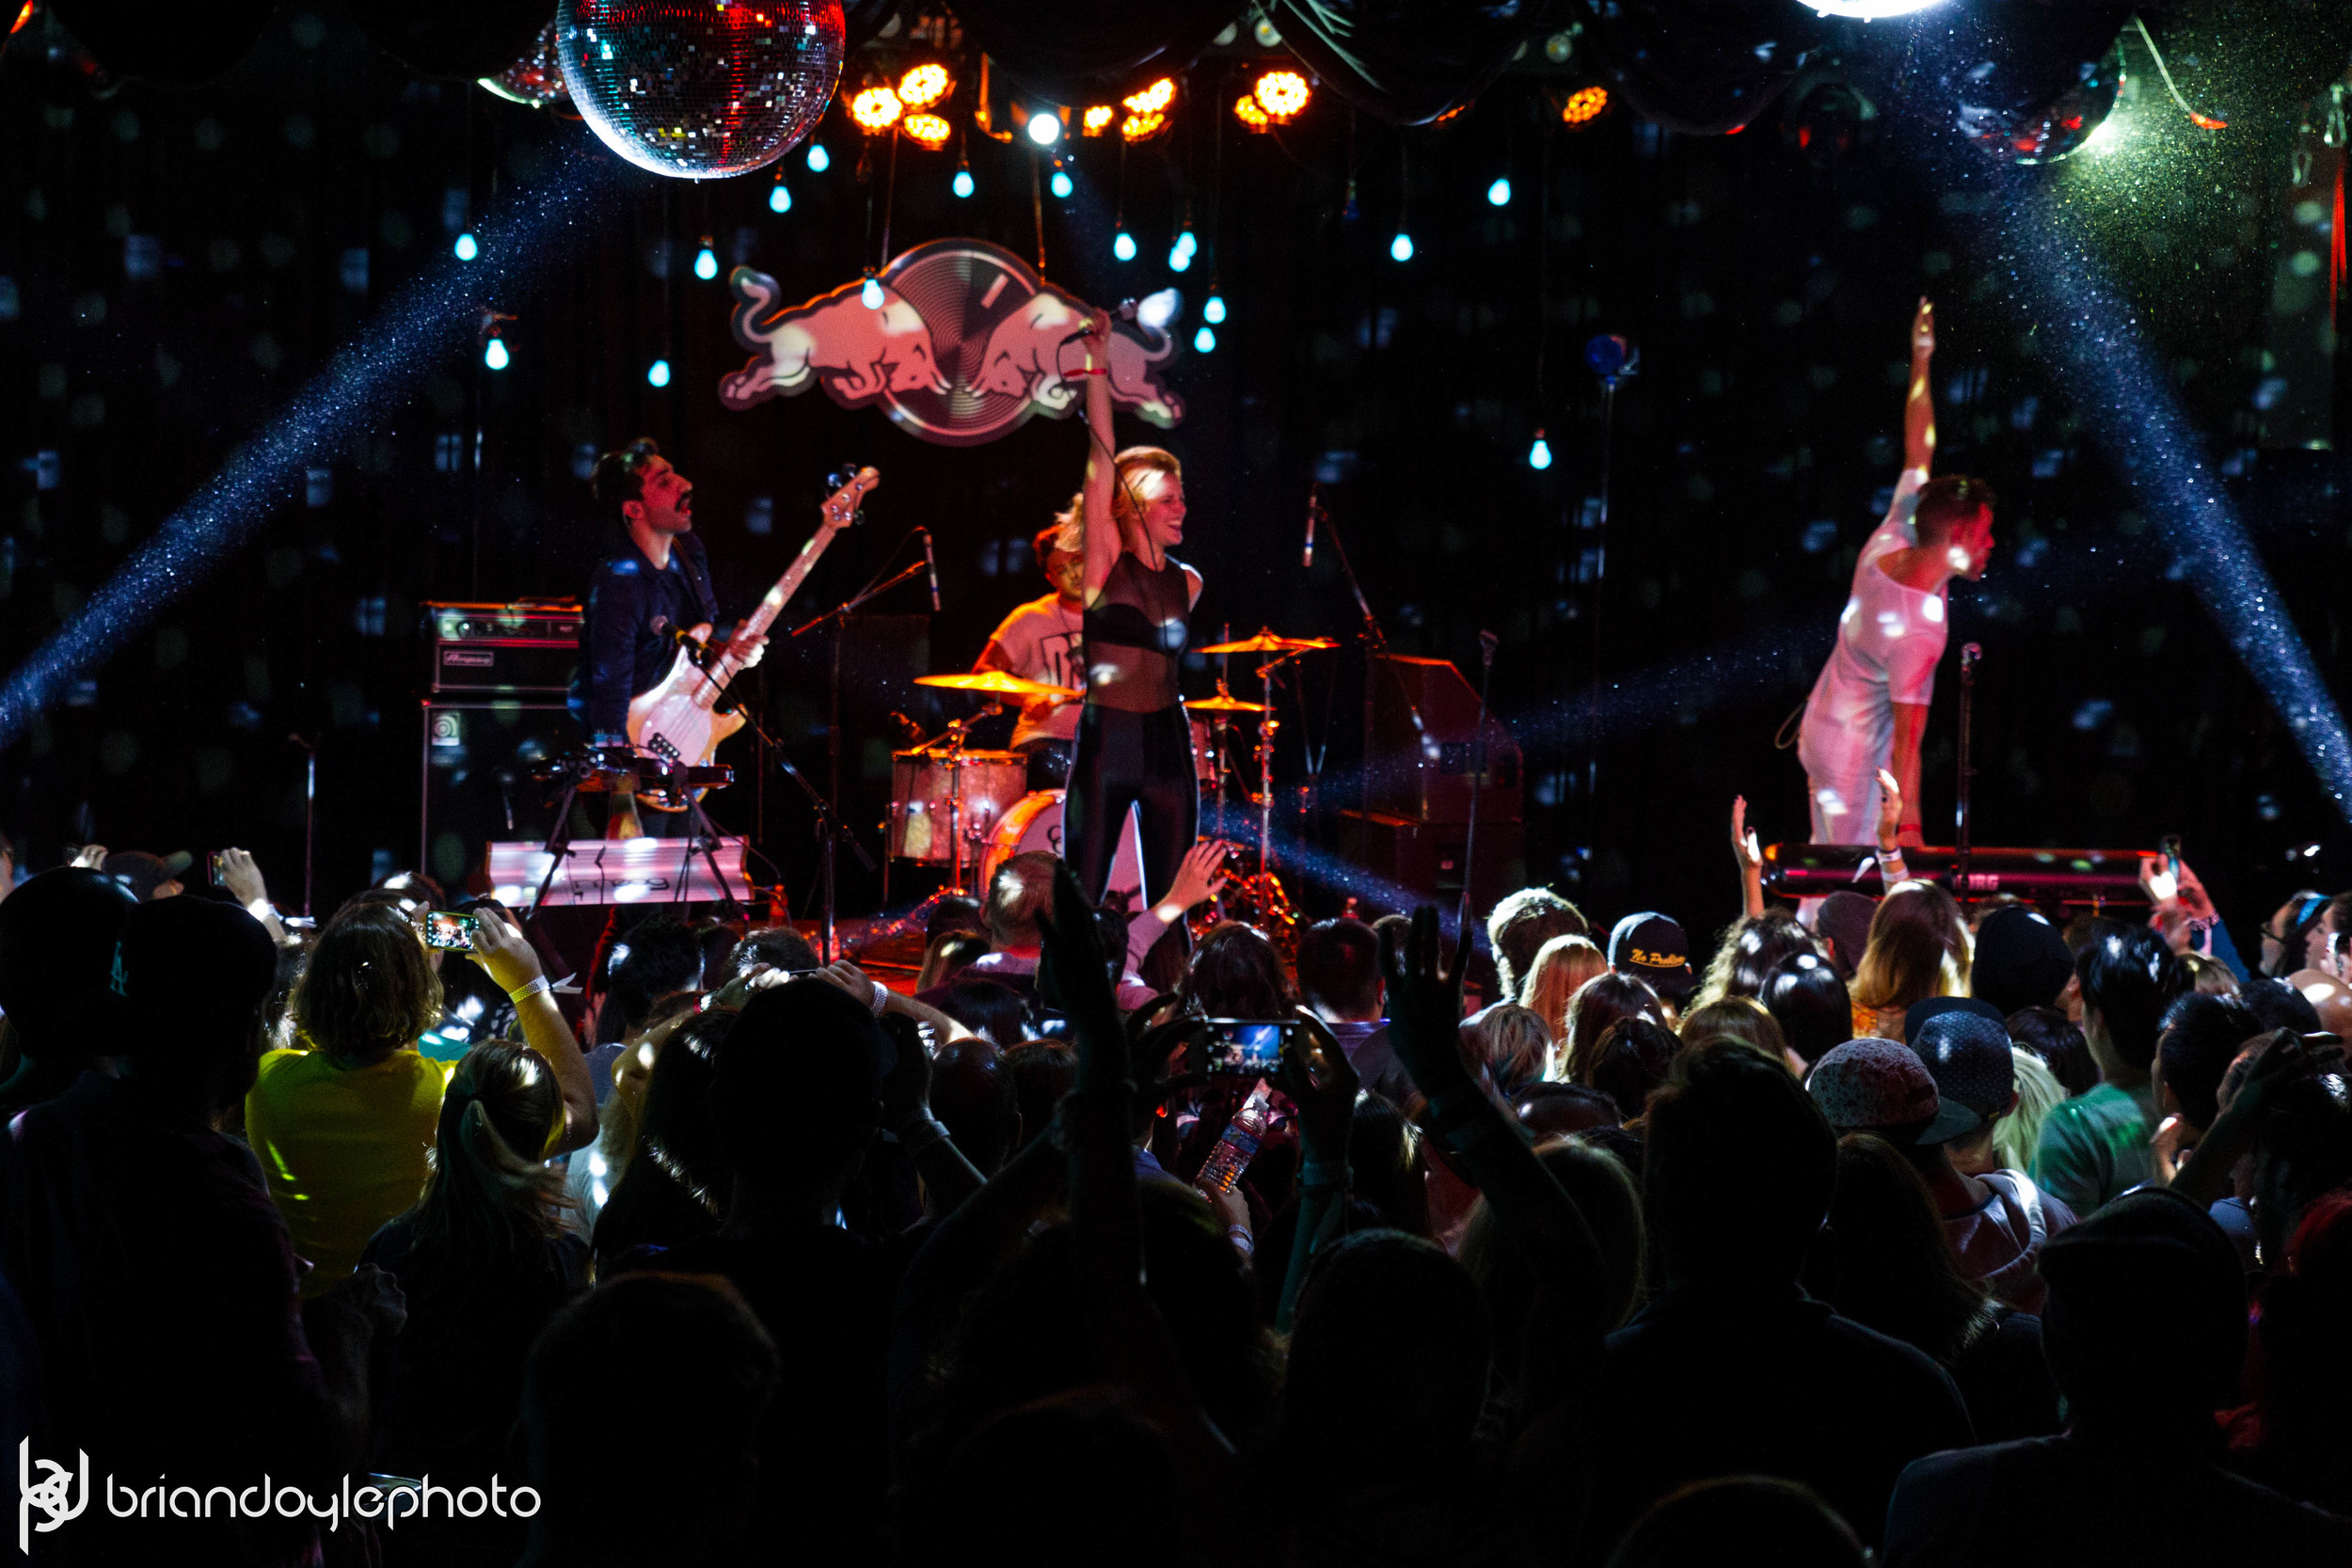 Red Bull - MS MR, Feathers, Electric Sons @ The Roxy 2014.11.02 -68.jpg